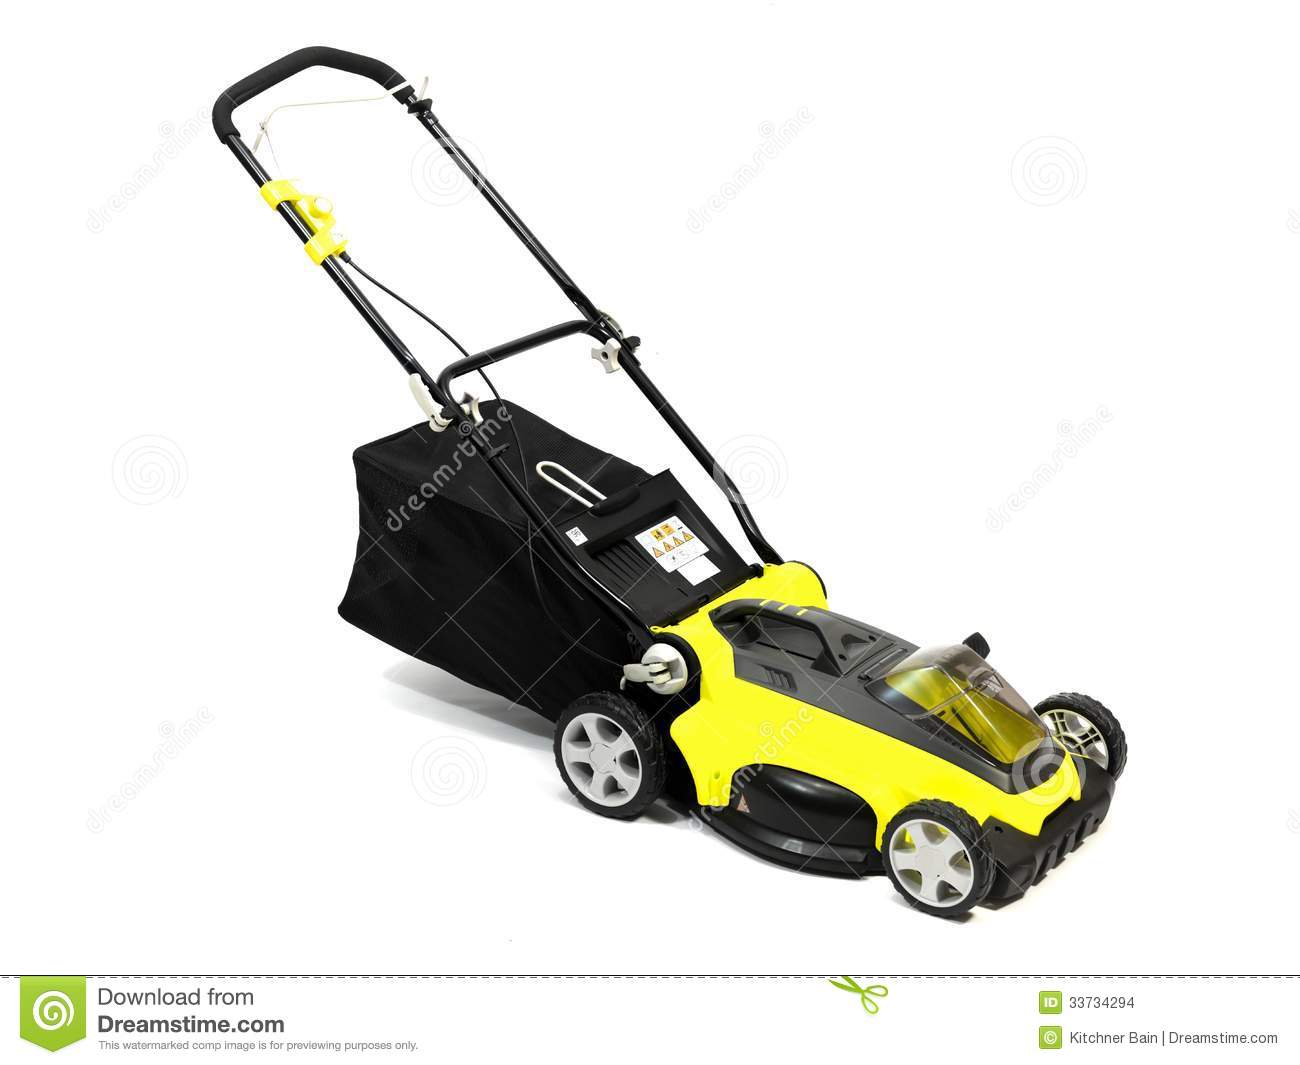 Rechargable Lawn Mower On A White Background Mr No Pr No 2 156 1